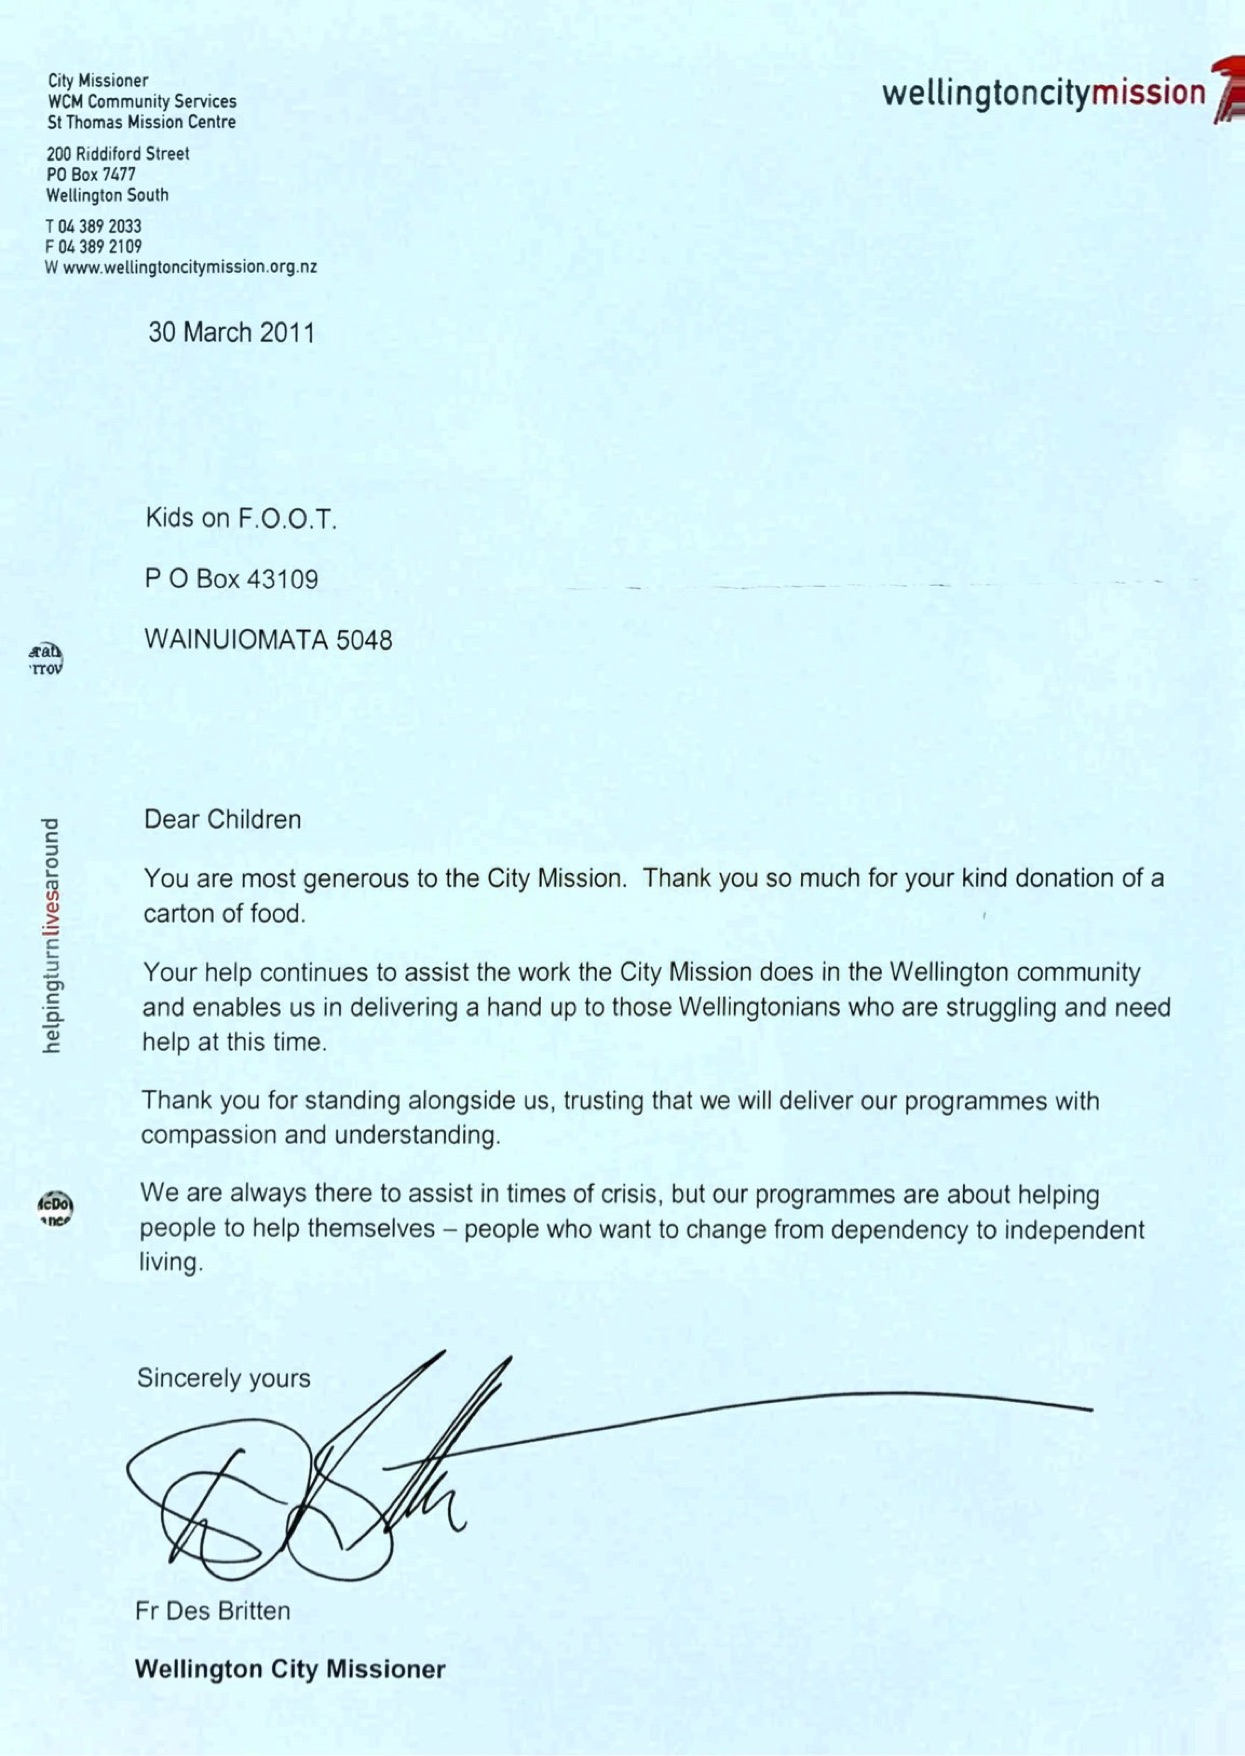 letter from city mission.jpg